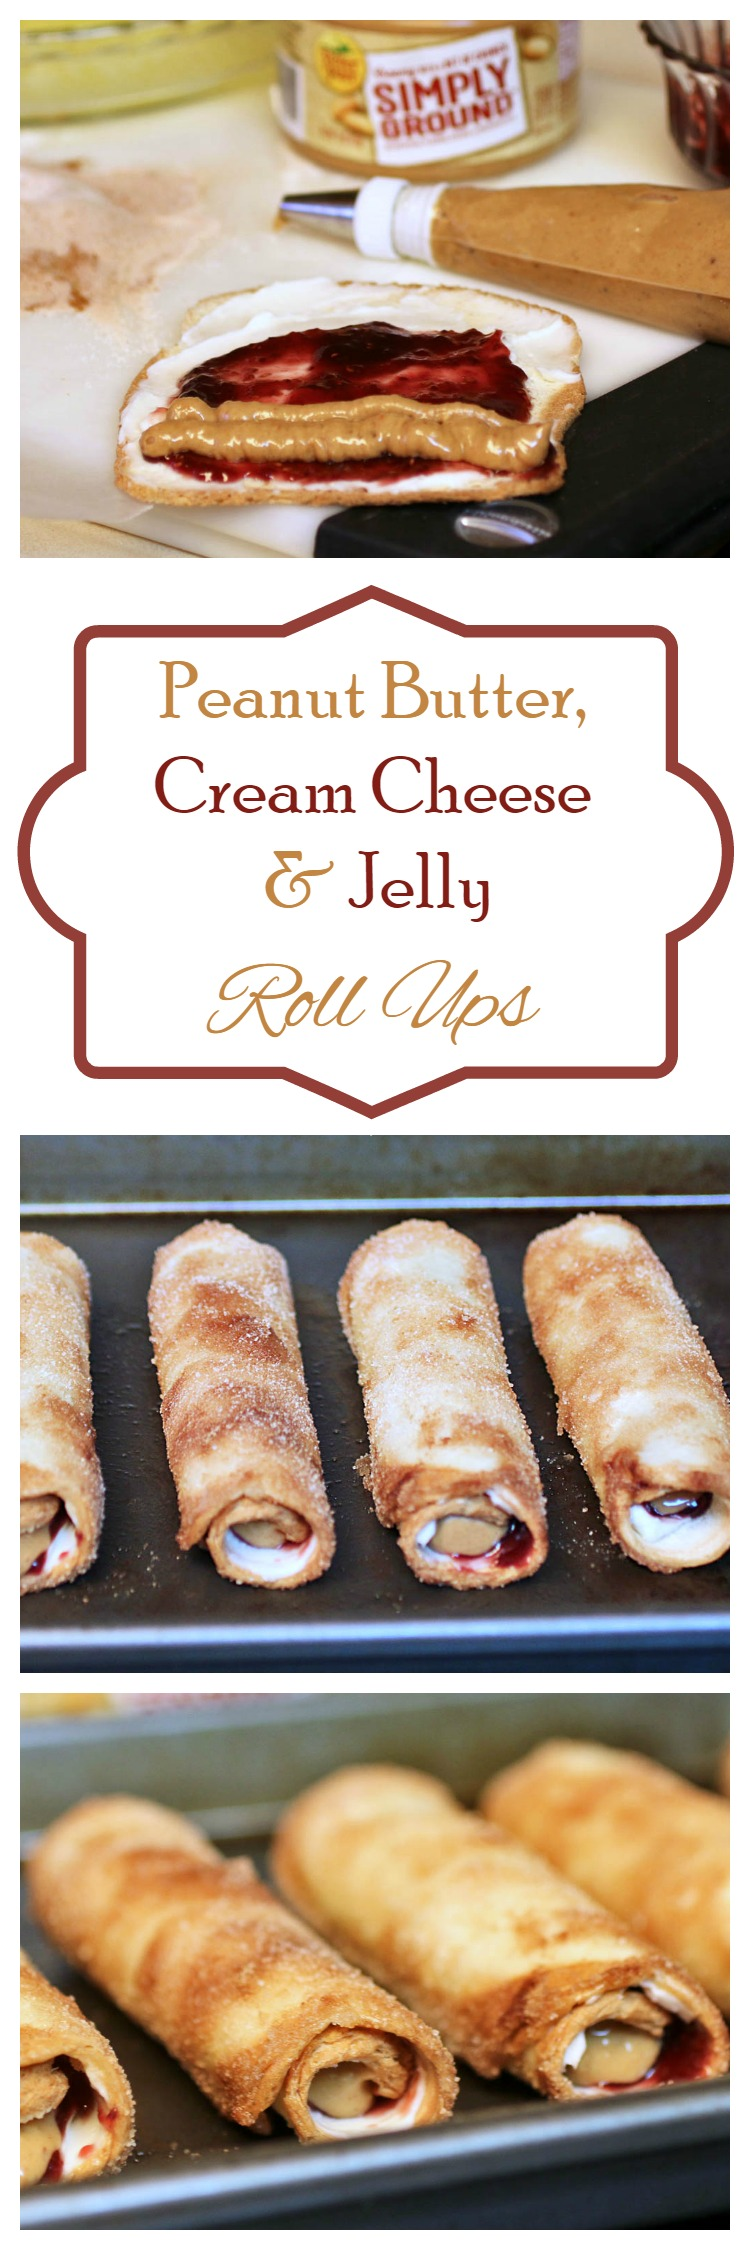 peanut butter and jelly roll ups peanut butter and jelly roll ups